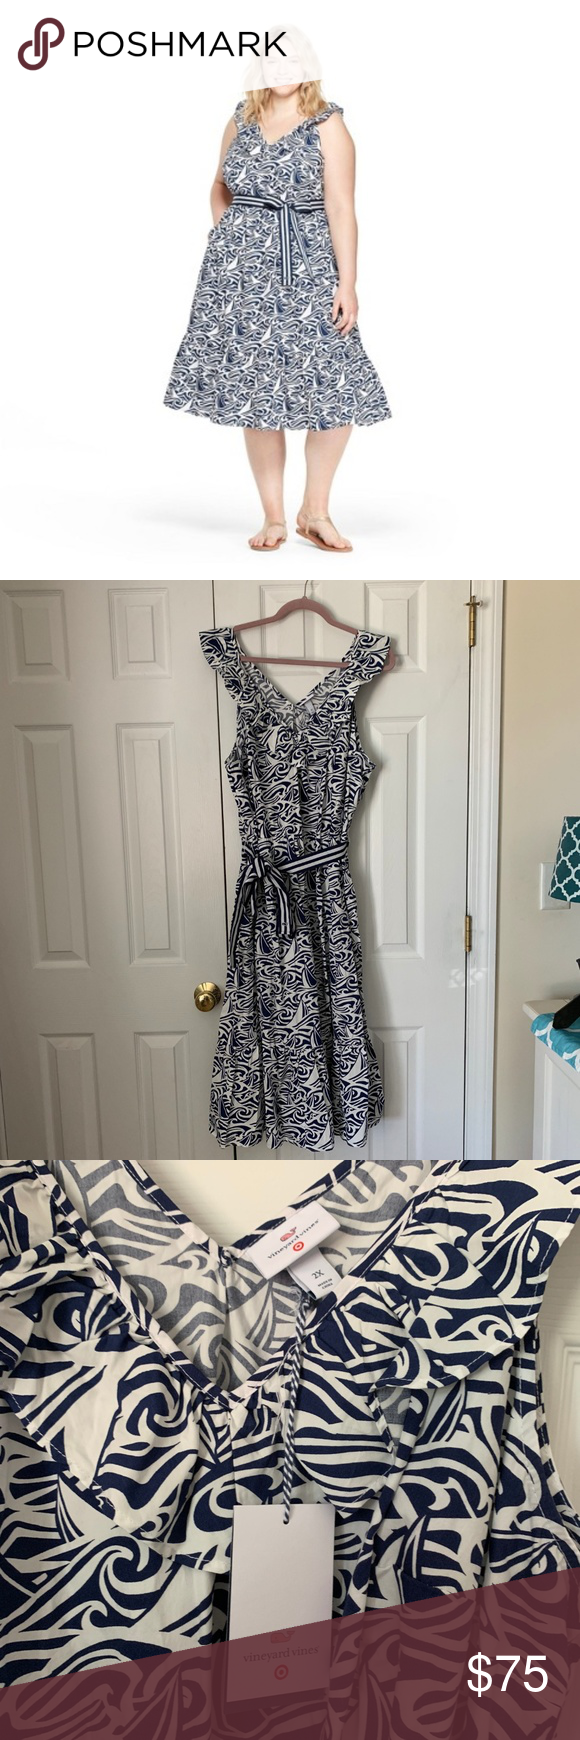 Vineyard Vines Target Plus Size 2X Rough Seas Ruffle Dress Tie Waist  NWT